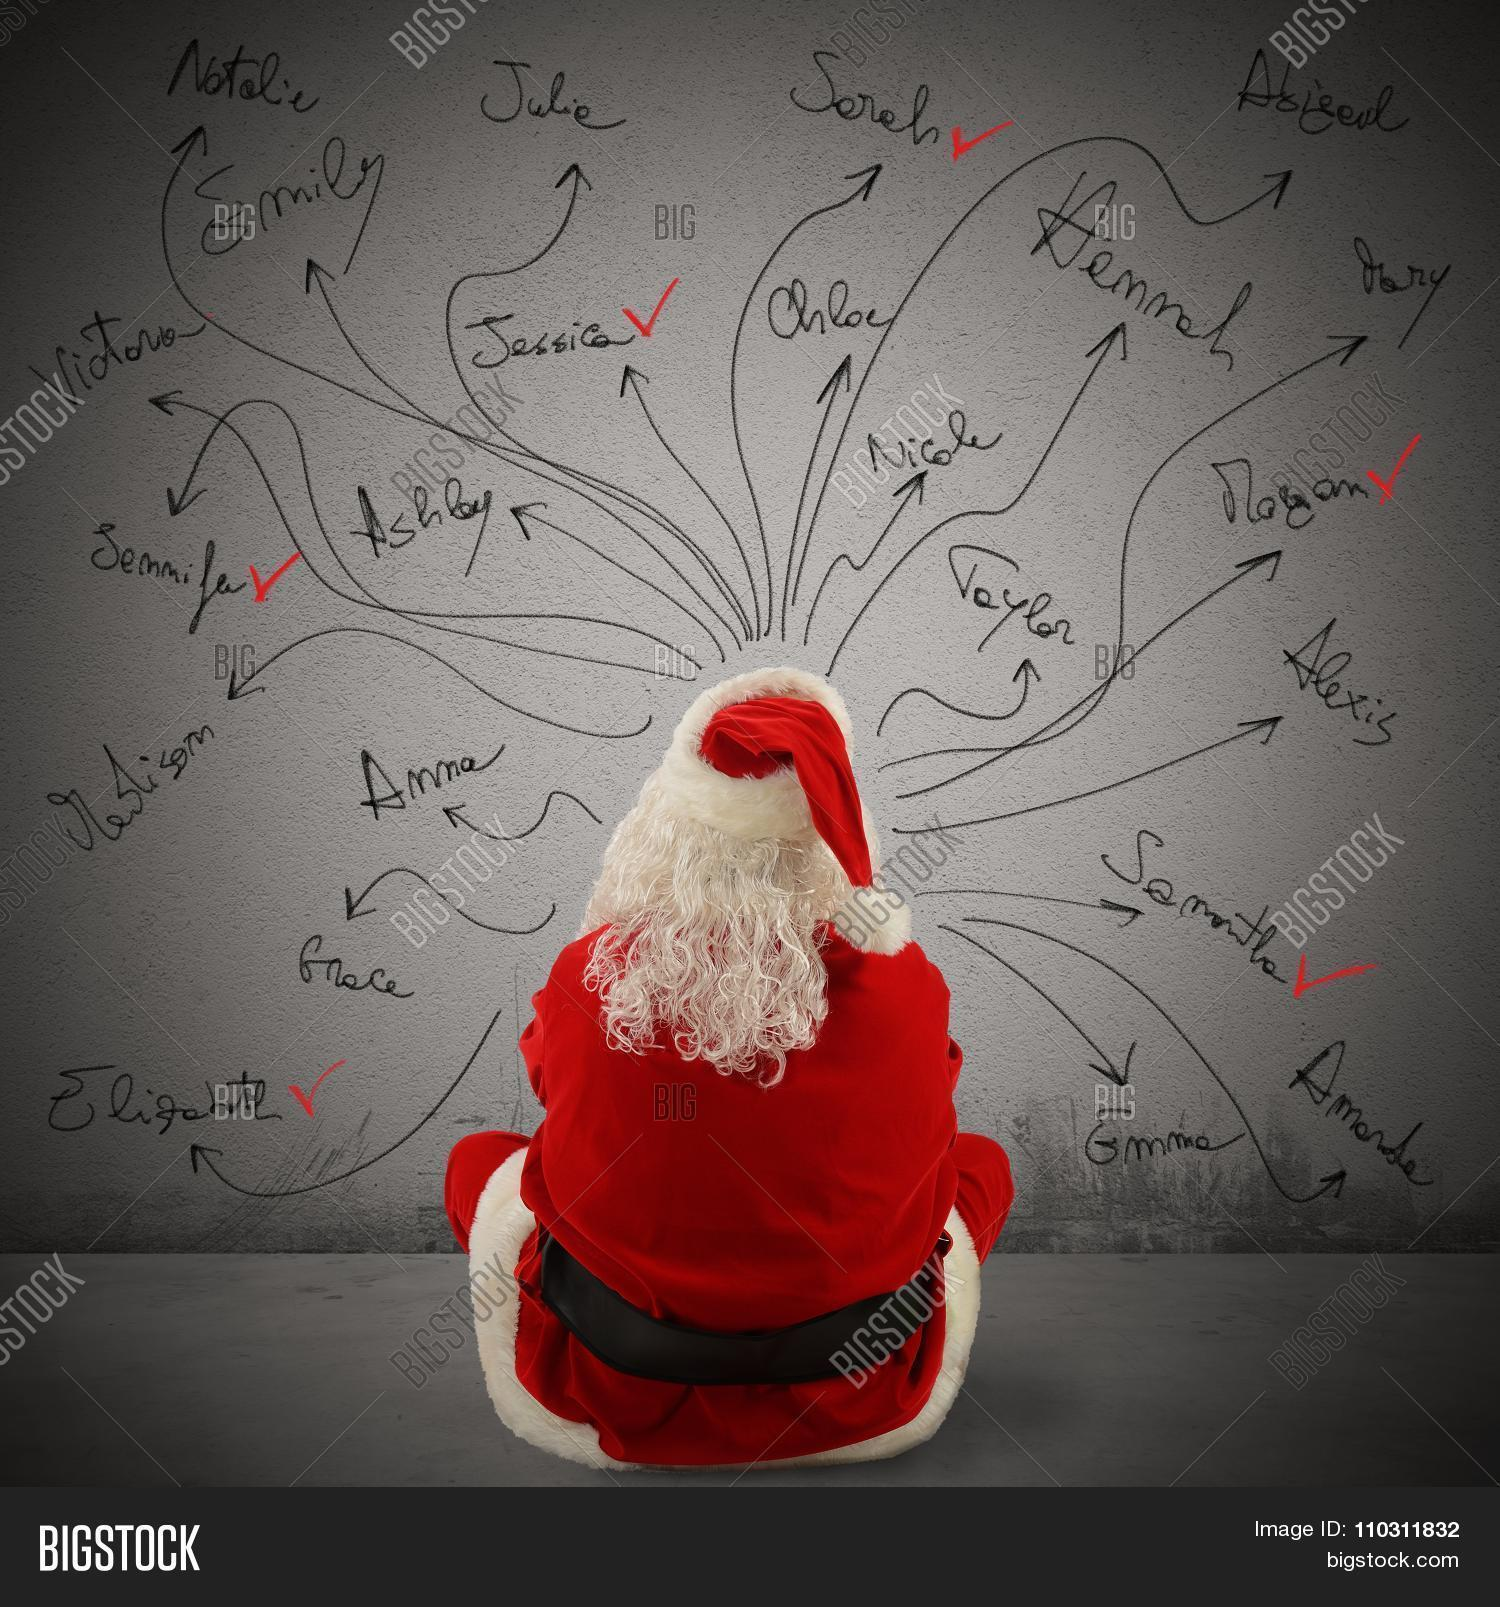 List Christmas Gift Image & Photo (Free Trial) | Bigstock